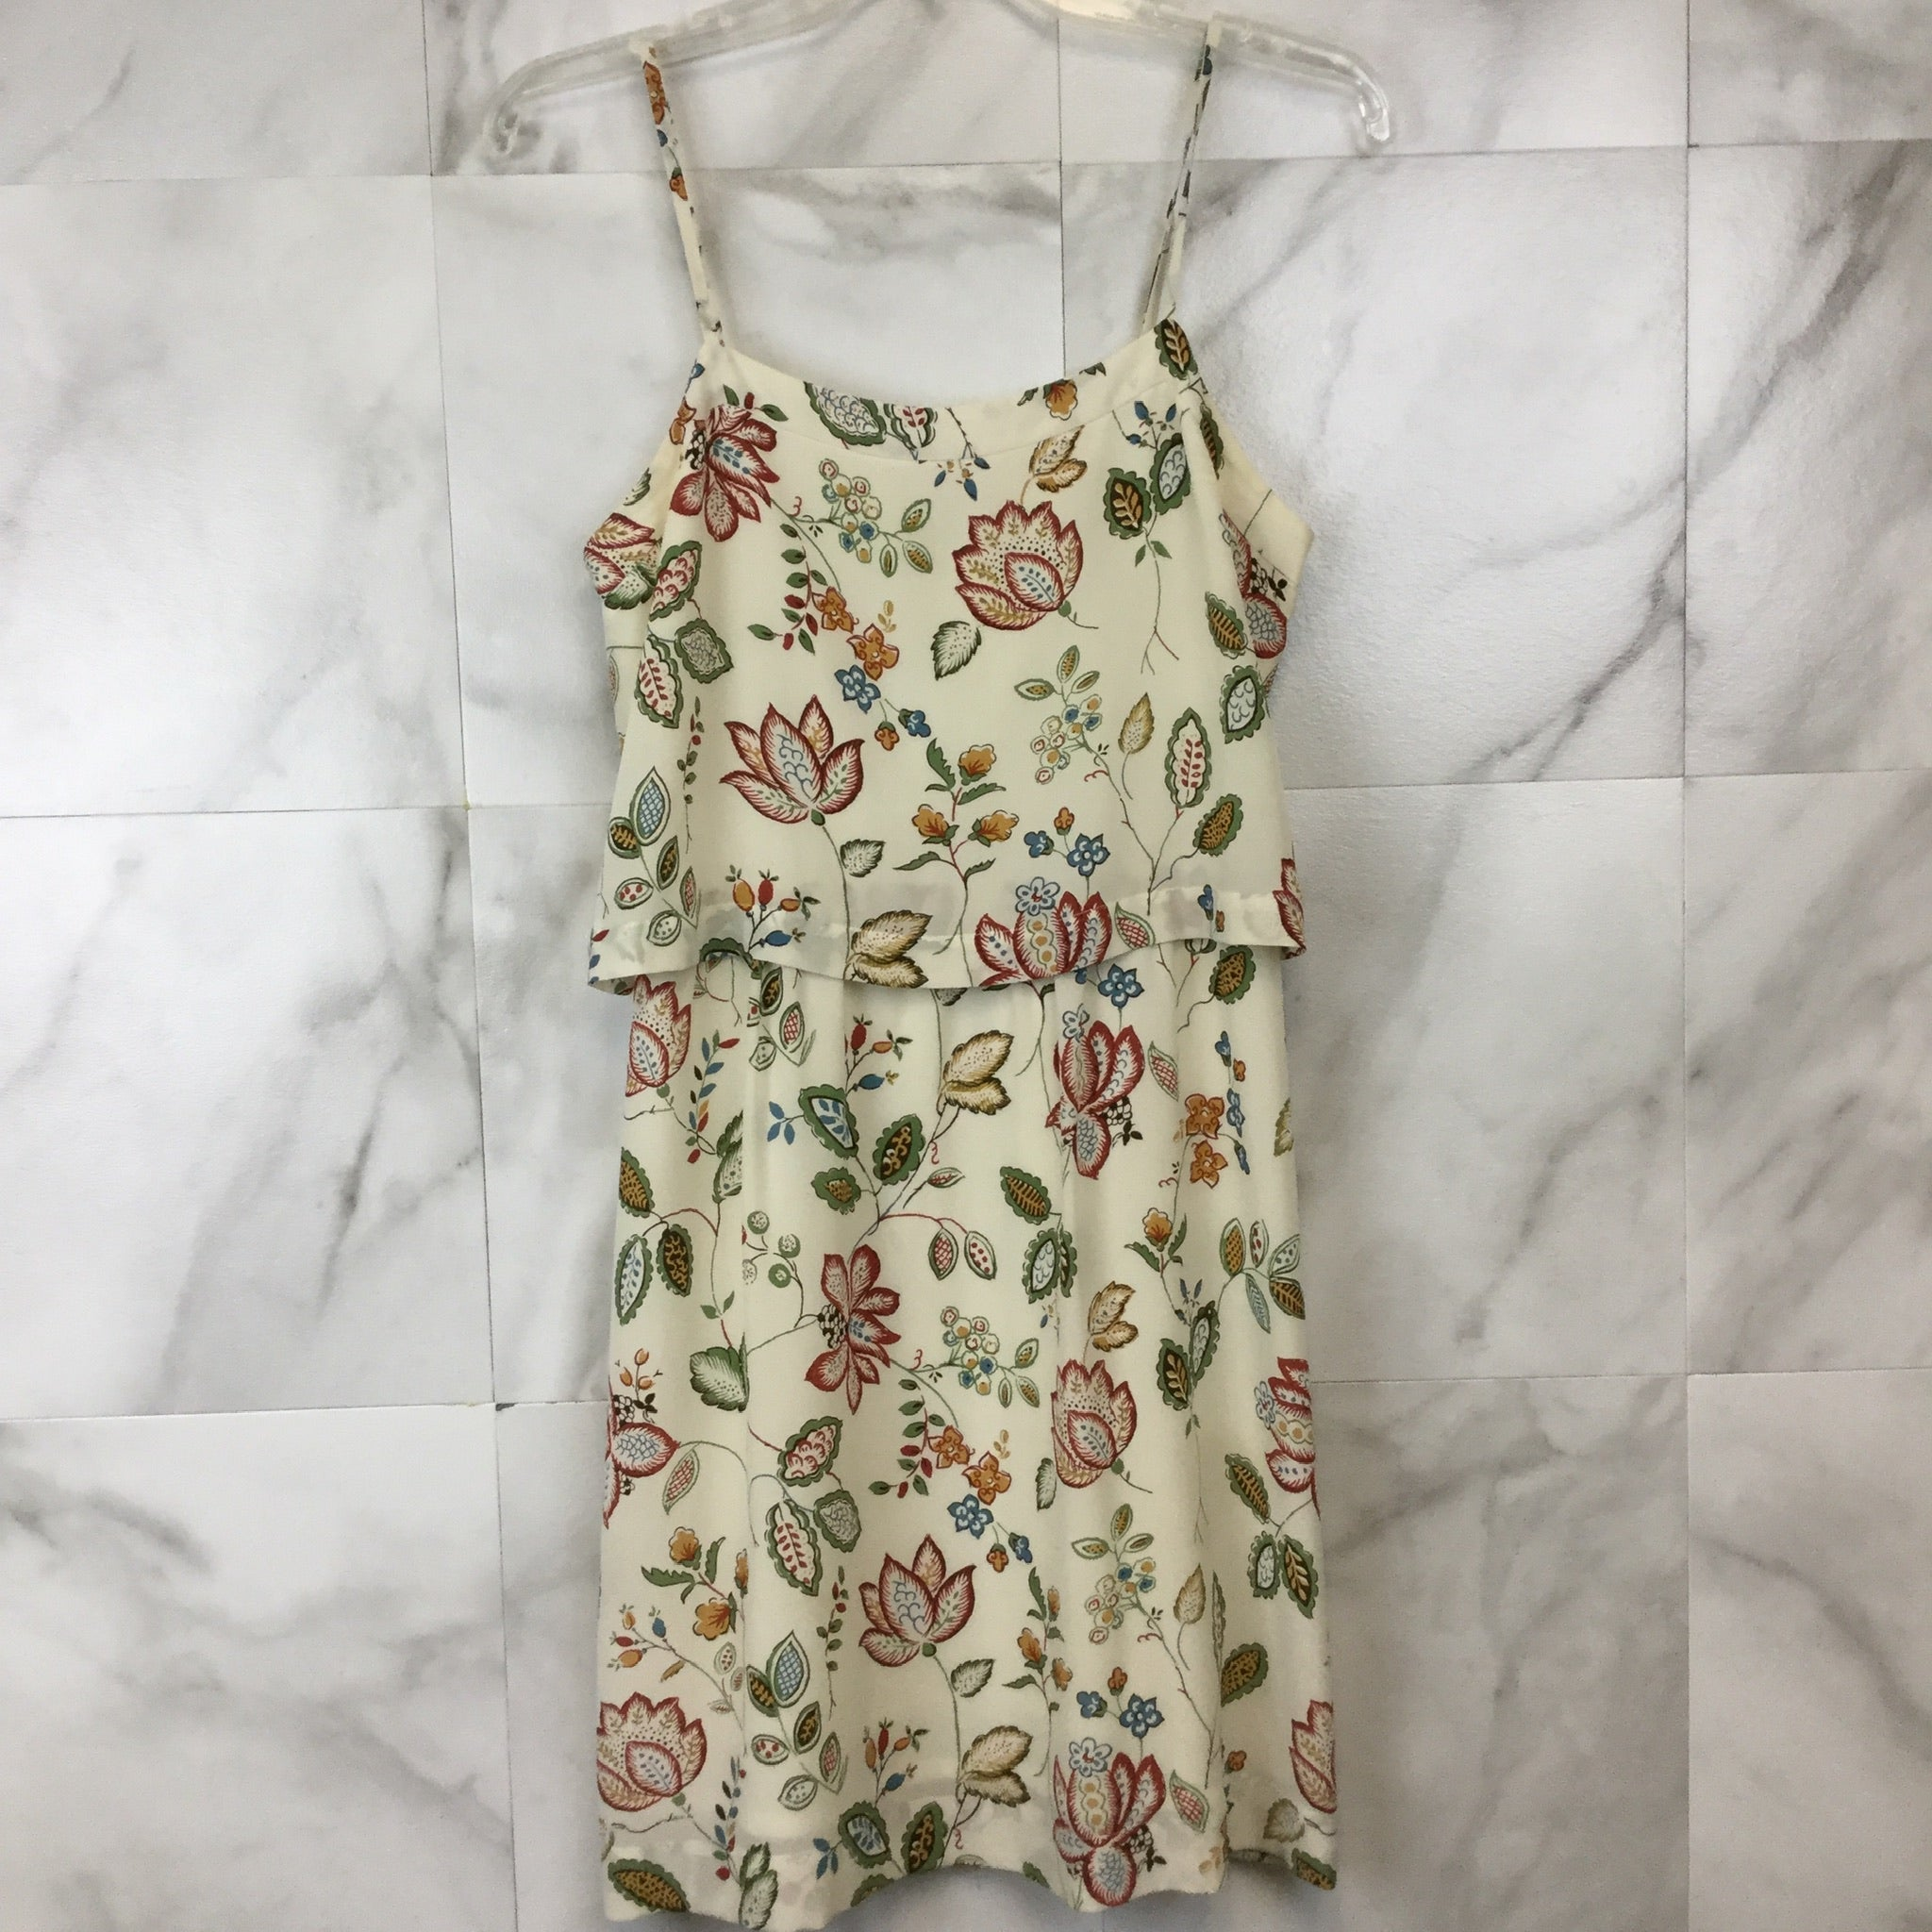 Madewell Silk Overlay Cami Dress - size 2